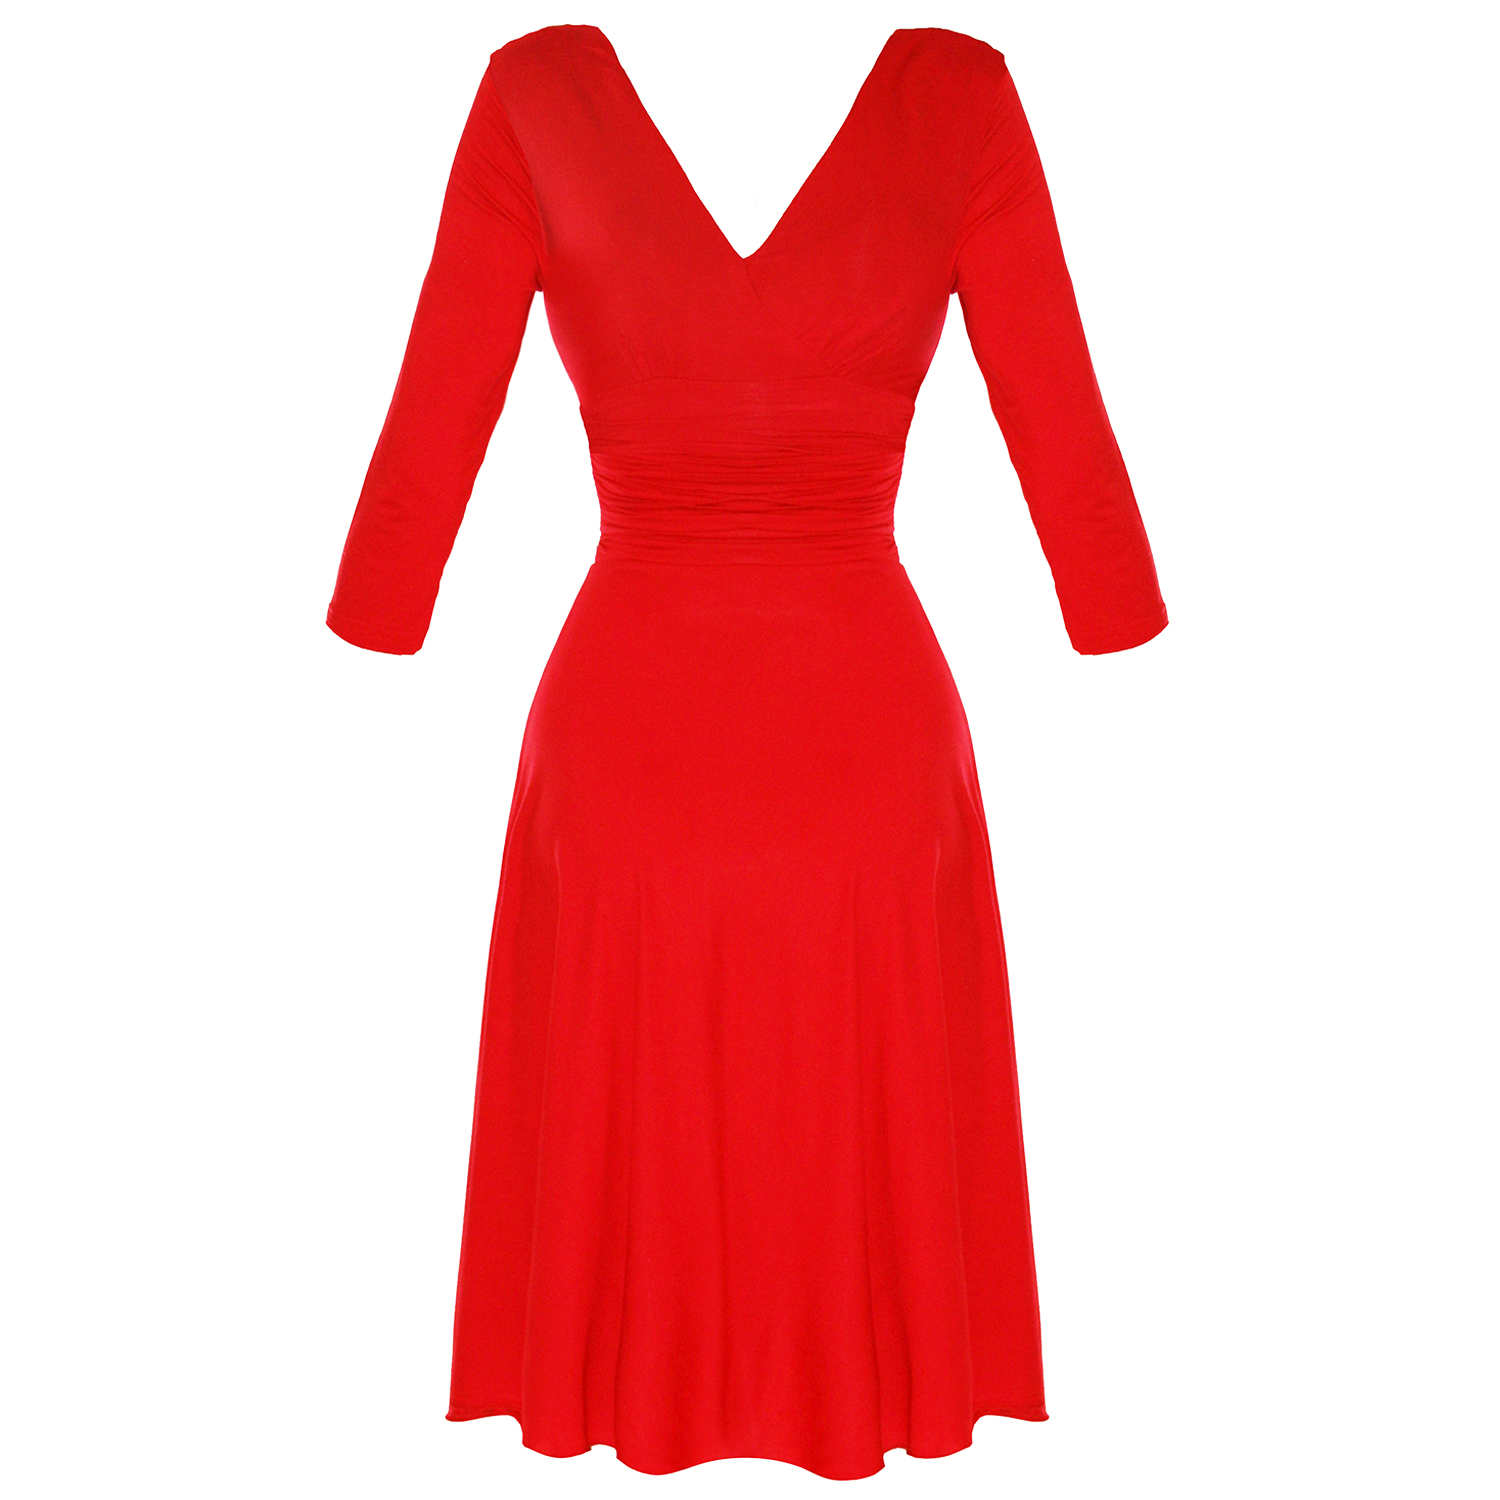 LADIES-NEW-RED-LONG-SLEEVE-WRAP-50S-VINTAGE-STYLE-CAREER-EVENING-PARTY-DRESS